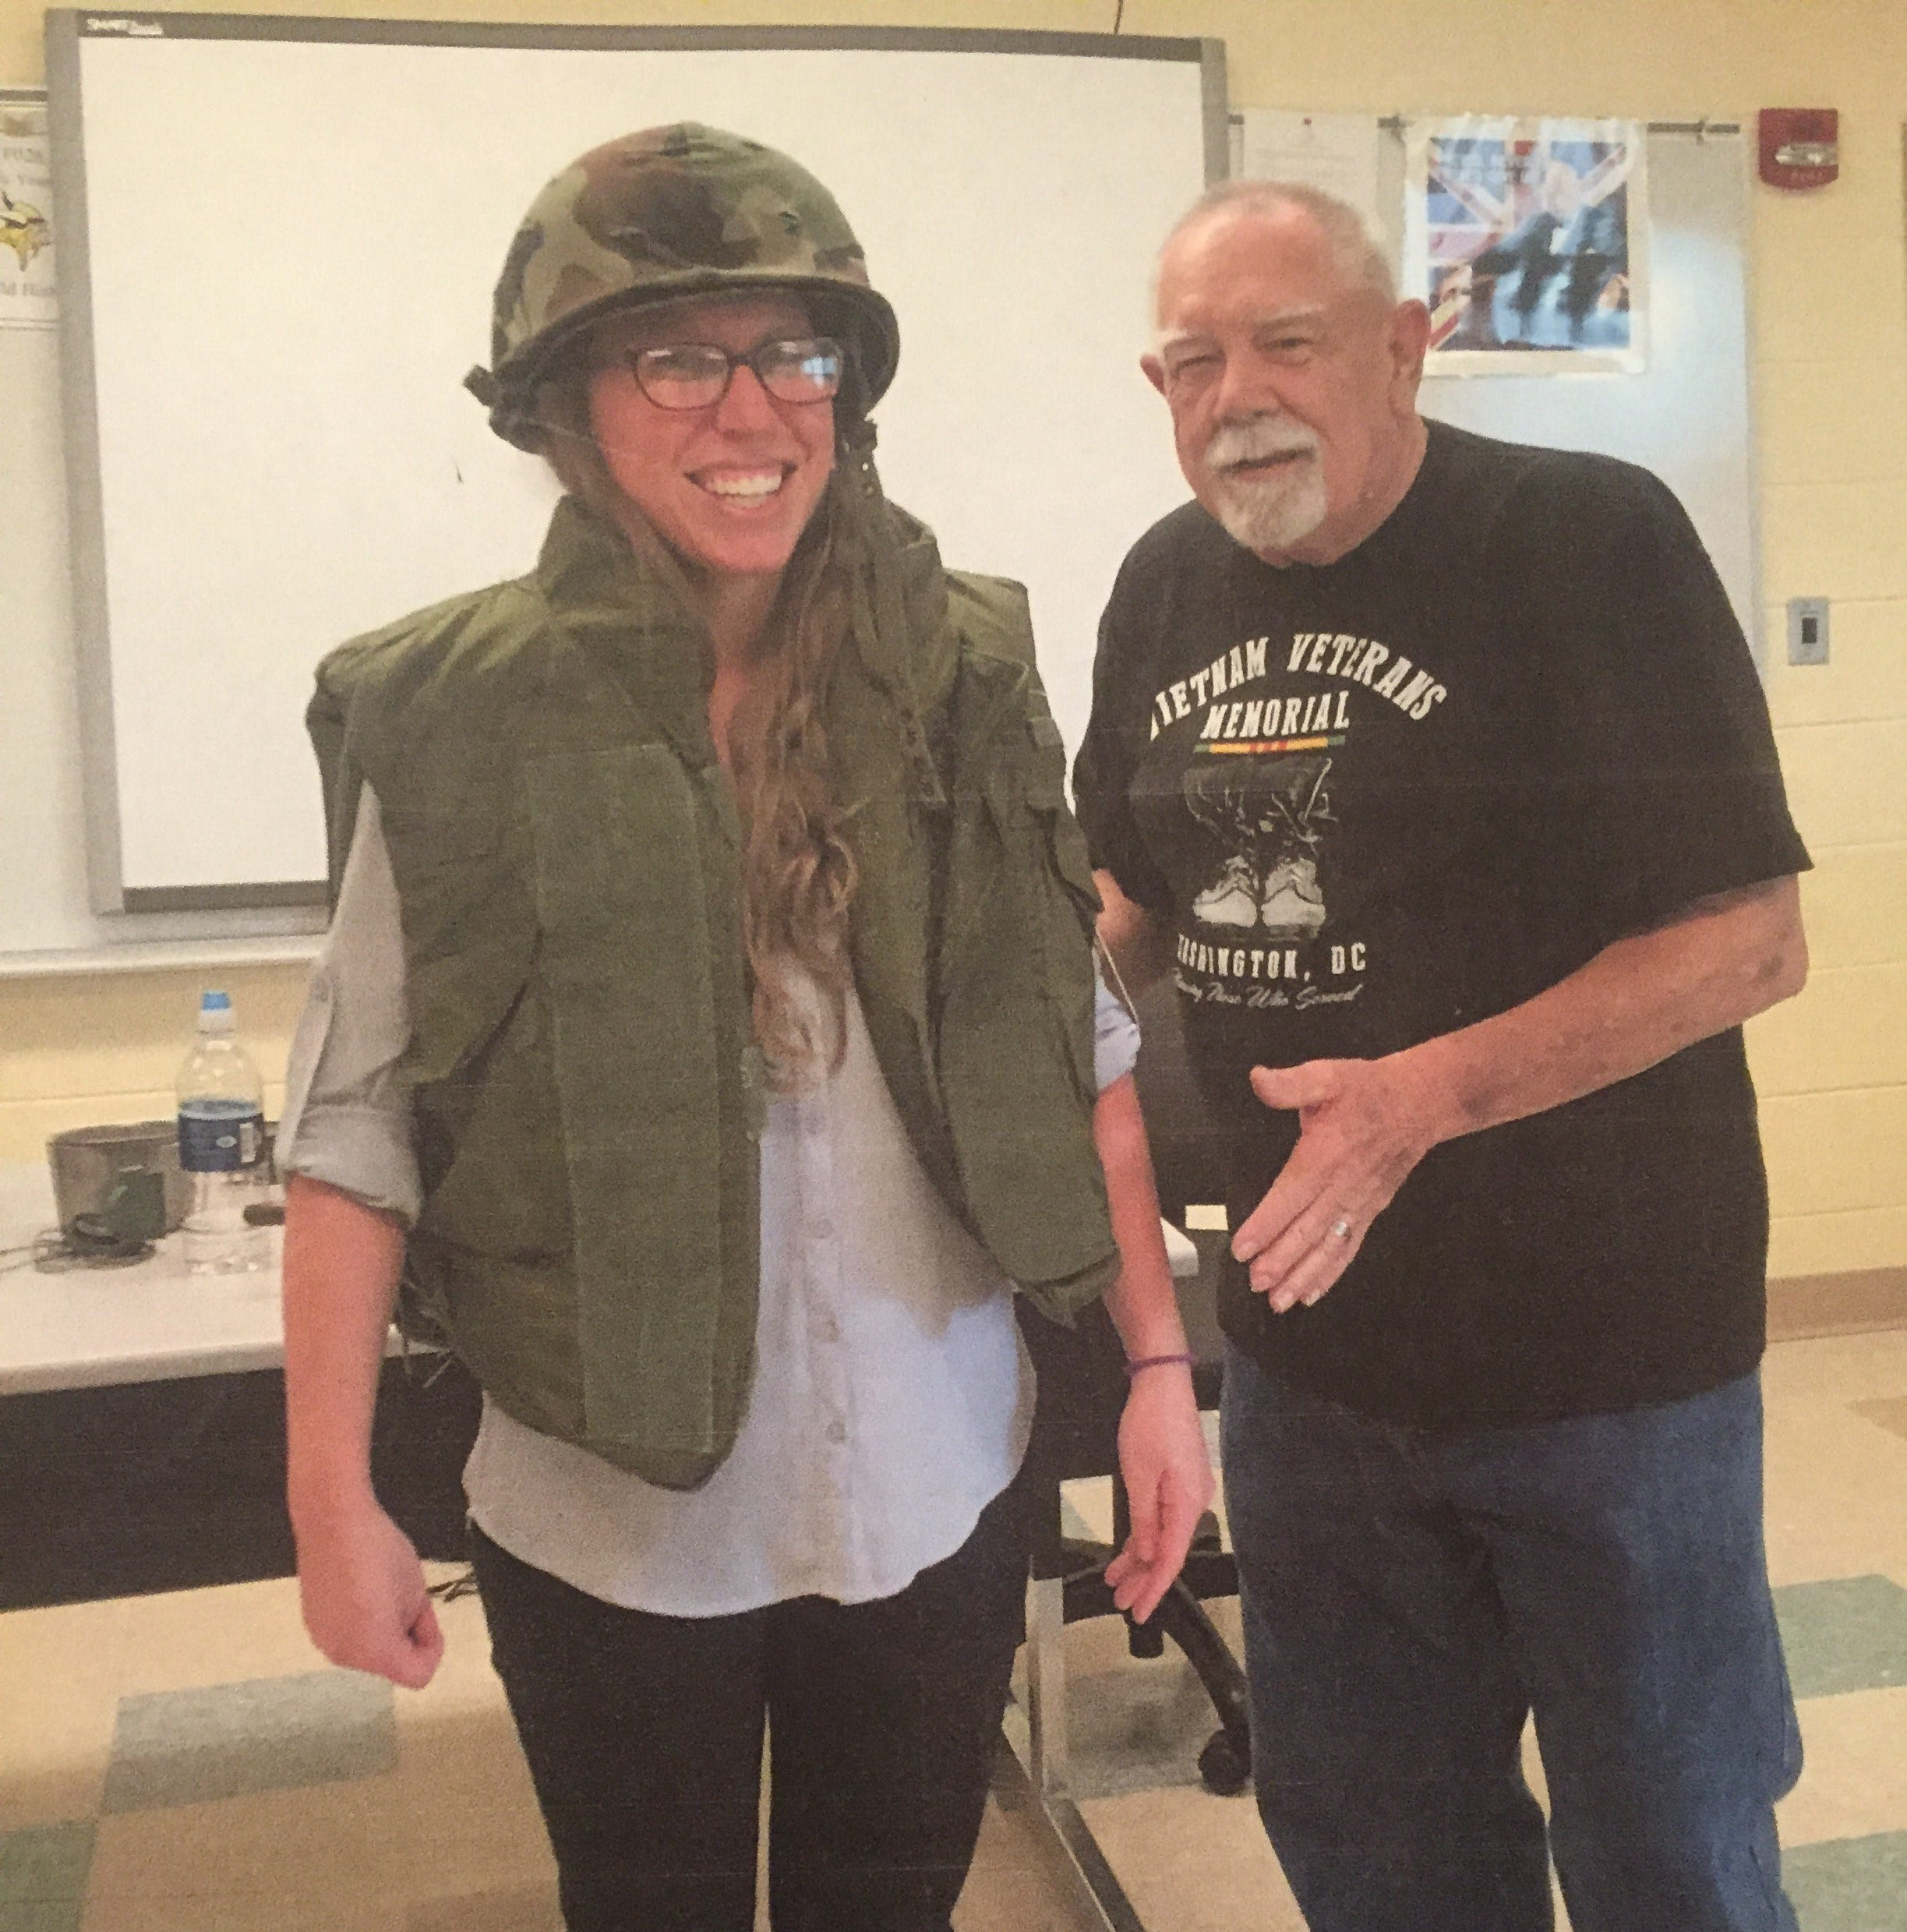 LeRoy Clendenen (right) appeared in Teays Valley educator Abby Young's classroom in May of this year for a special program. Clendenen was scheduled to be inducted into the Ohio Veterans Hall of Fame on Nov. 8.